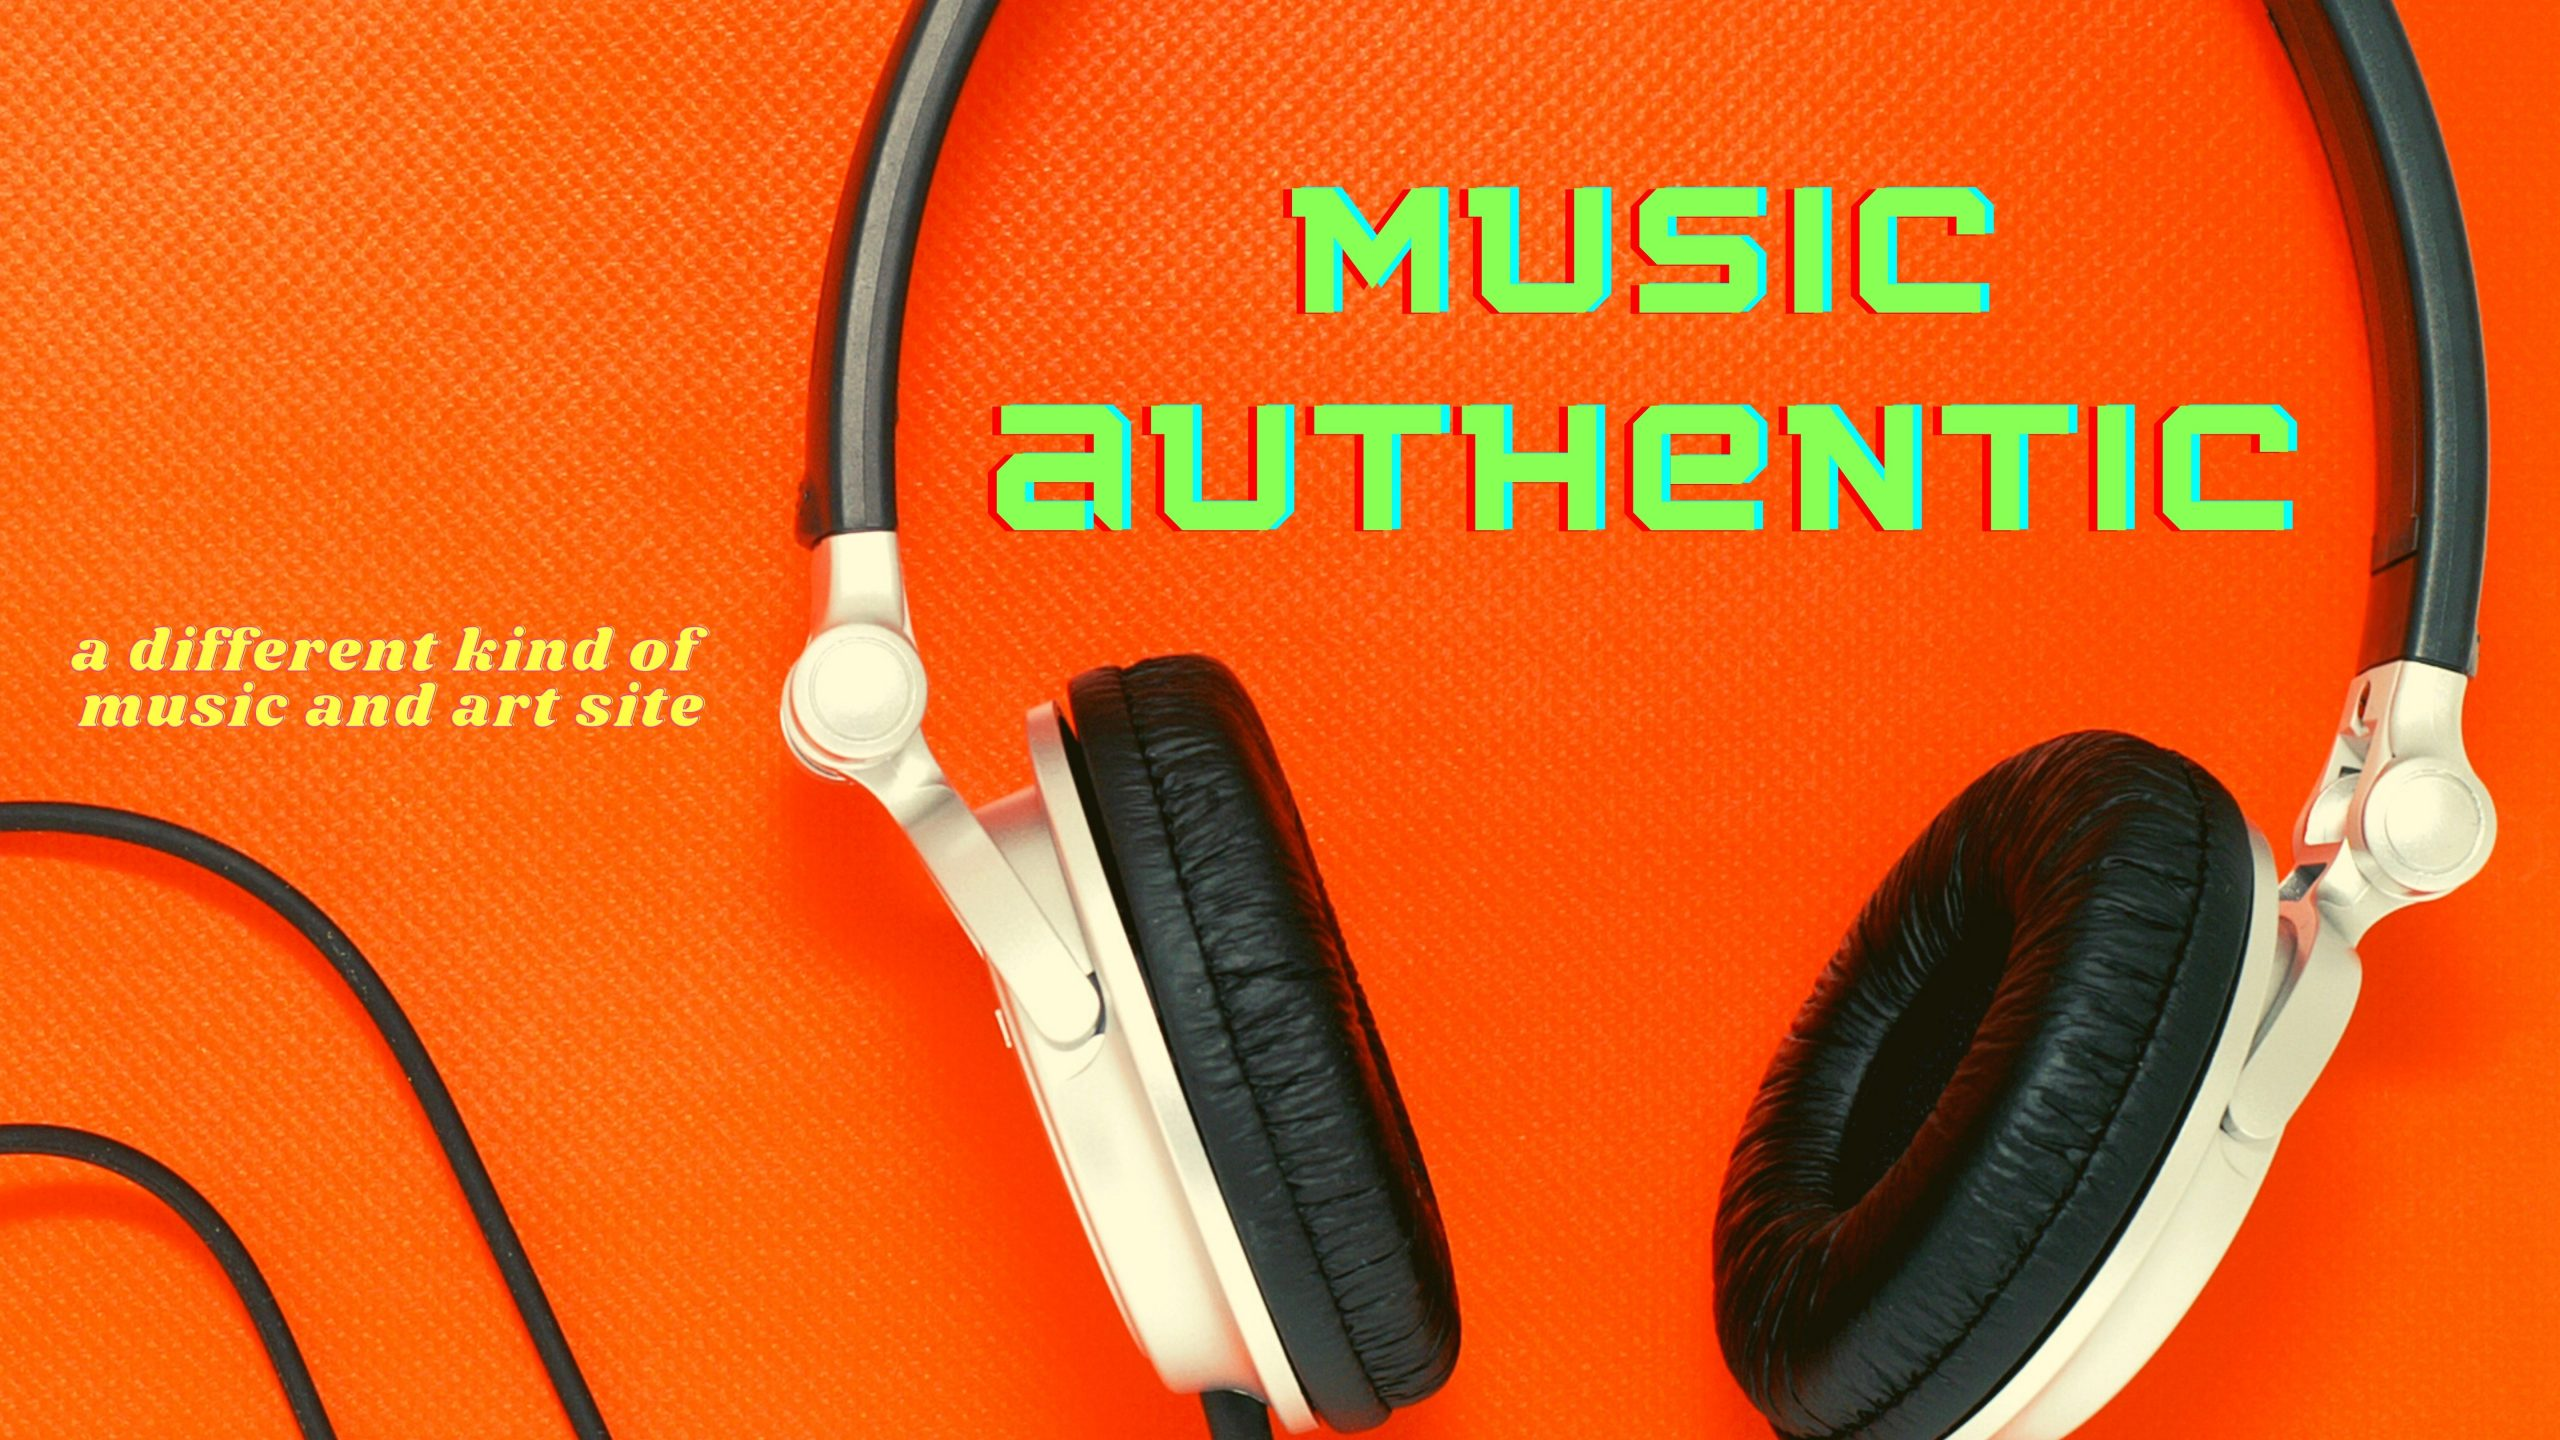 About Music Authentic